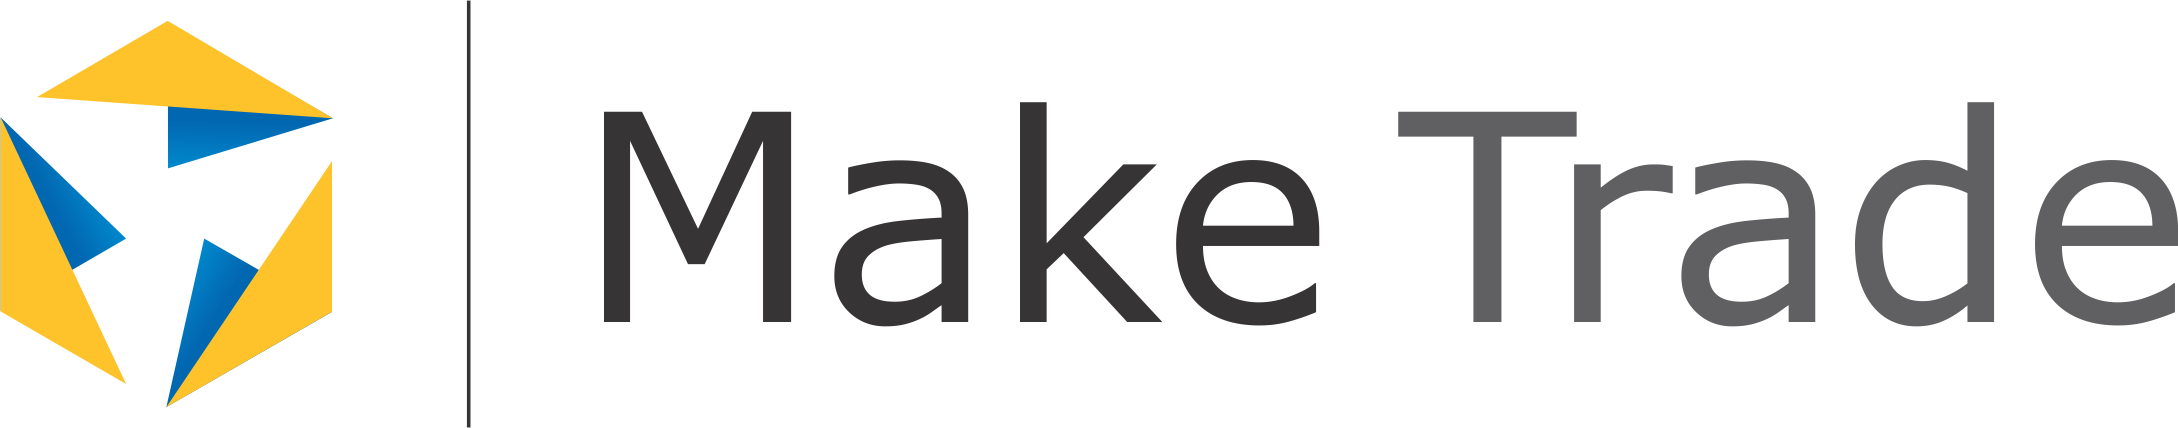 Make Trade logo CMYK Transparent